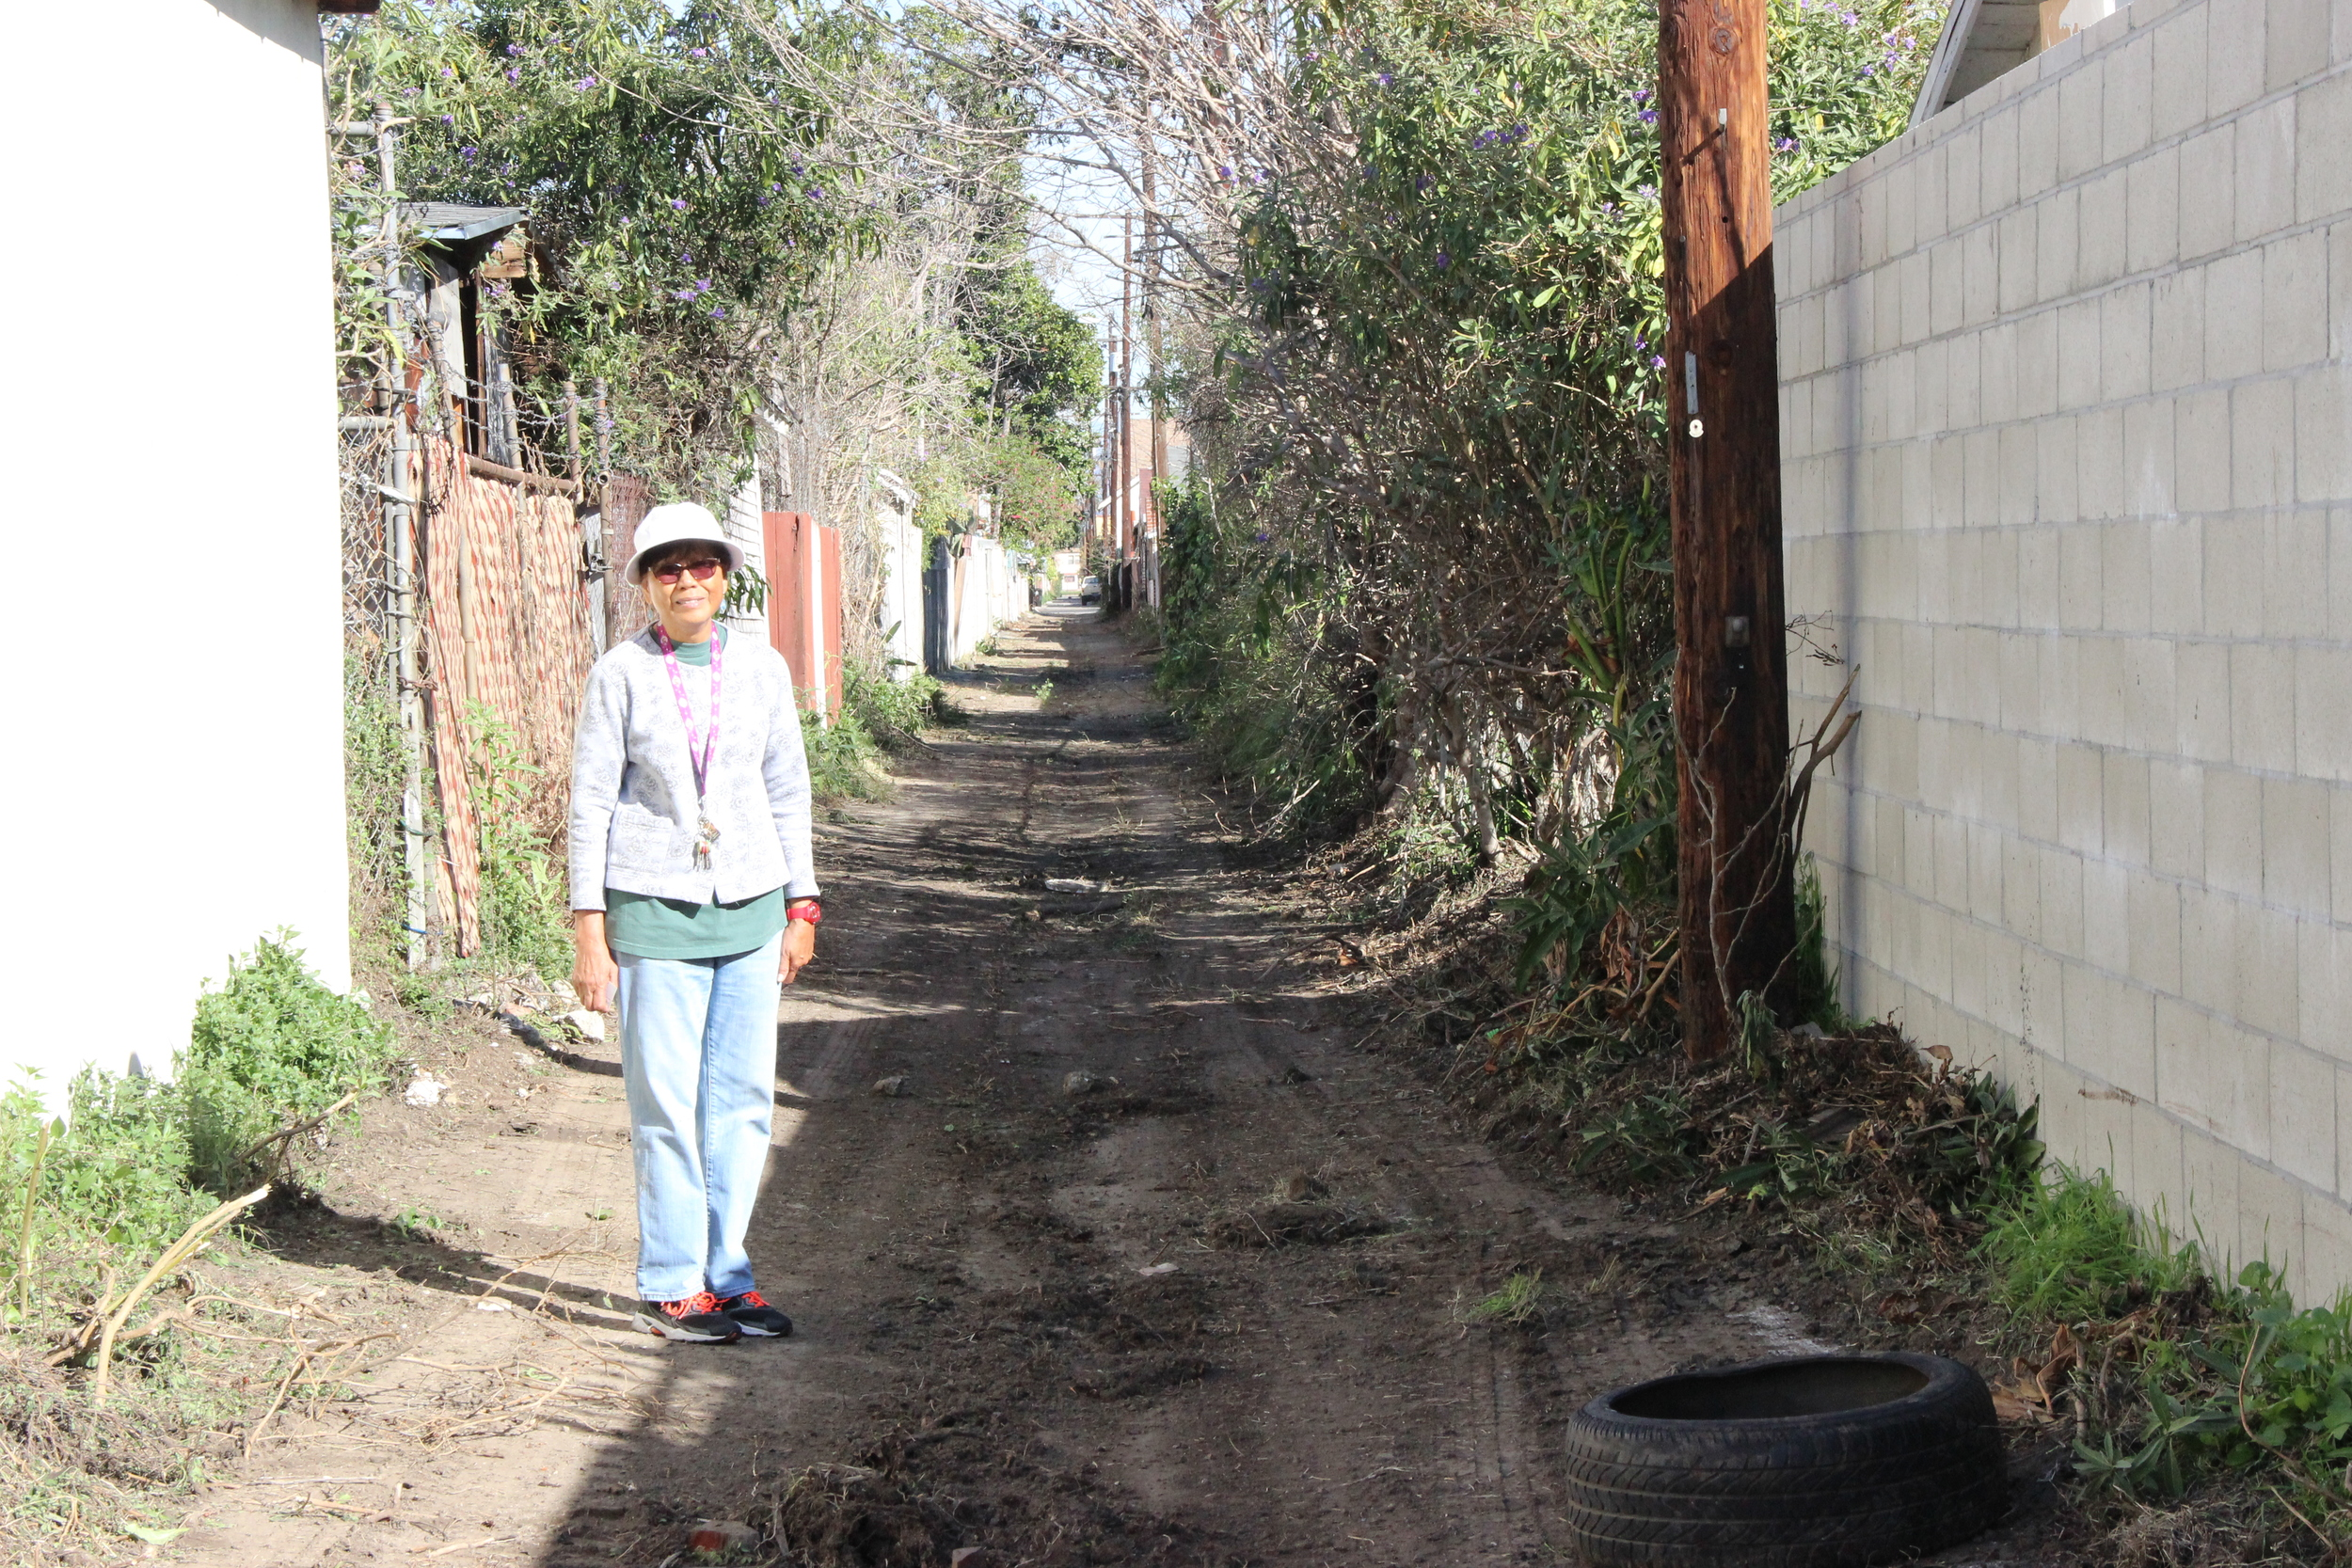 """This alley was scary. As a matter of fact, I was broken into from the back so that's when I started. At the beginning I cleaned the space I have in back of my fence, but then I got tired of it because I got no help. So then I started a movement which started in August but then I stopped because my mother died. I started again in February and it seemed like I was getting some traction and getting some more people. Before there were only a few people but this last February there were more. And now we are going to have a block meeting in March and I will start to give the flyers out again so that we get the whole community involved. It's so hard to organize, but I will tell them, you cleaned today, February 24. I will tell them and I hope you keep doing it."""